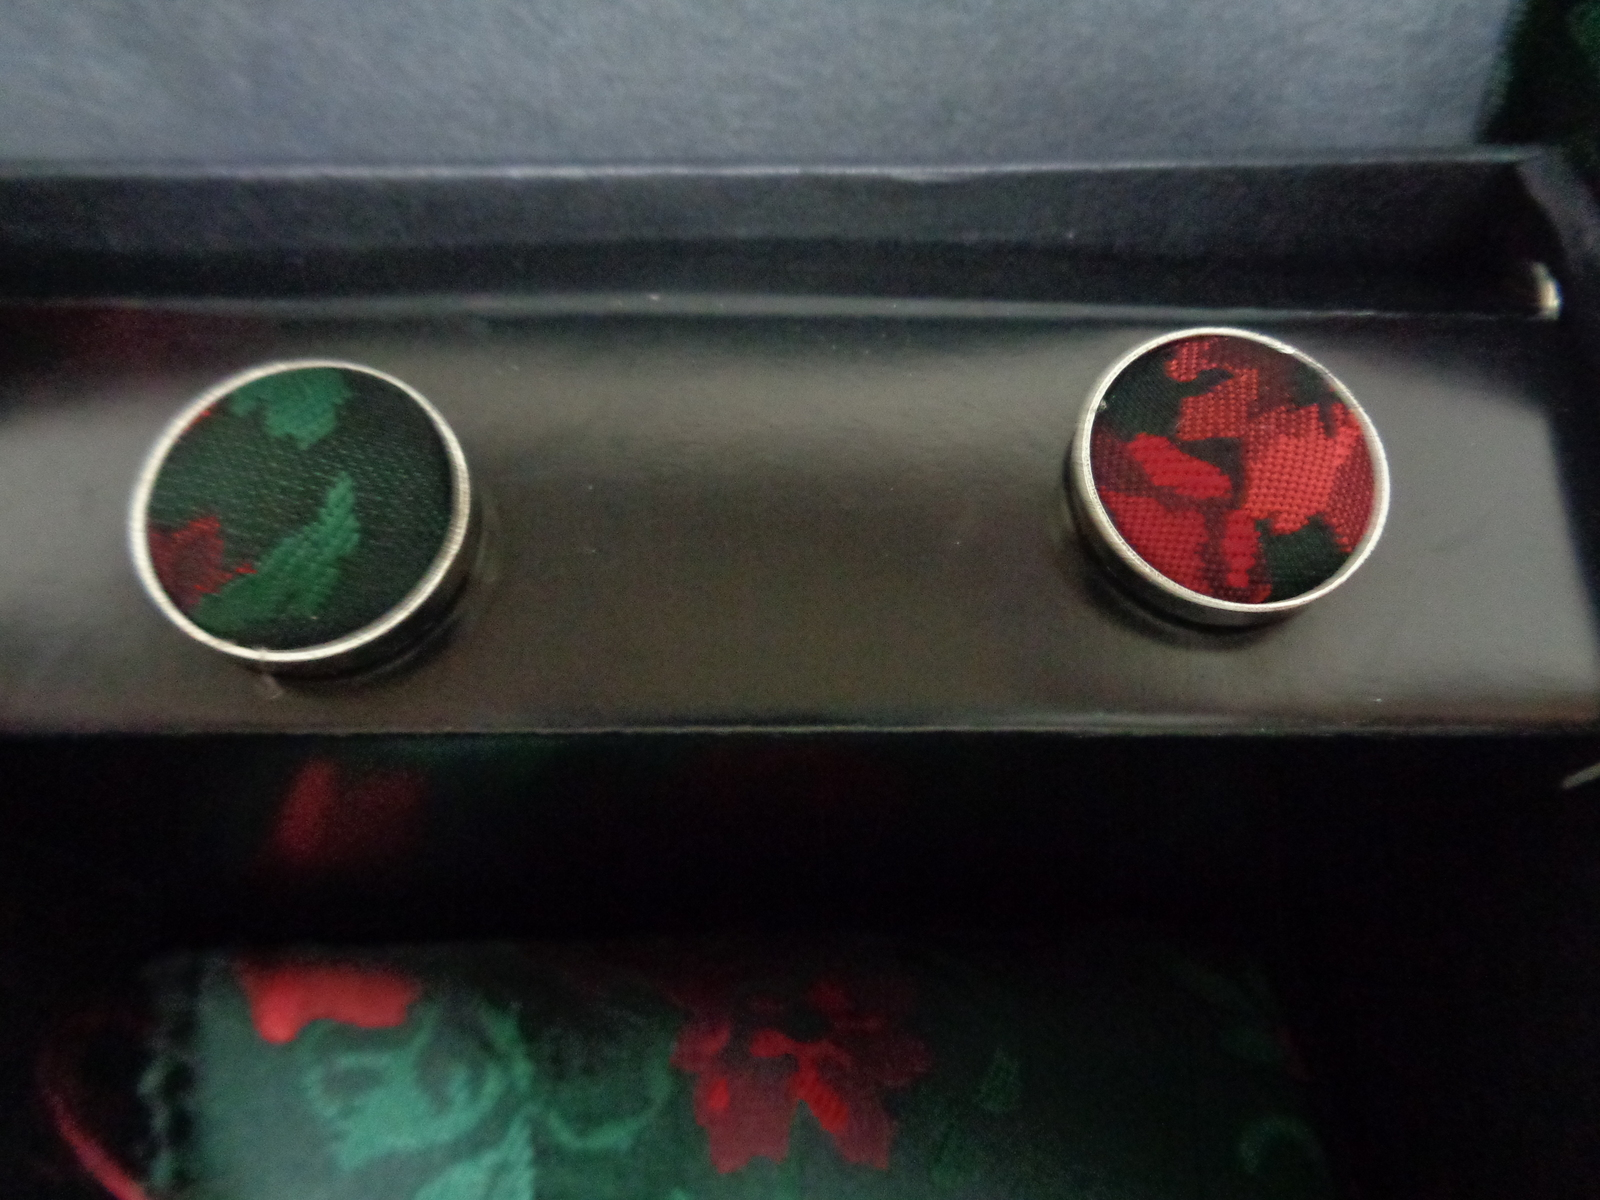 Red Rose Tie Matching Cufflinks Floral Design NWT 100% Silk Free Shipping